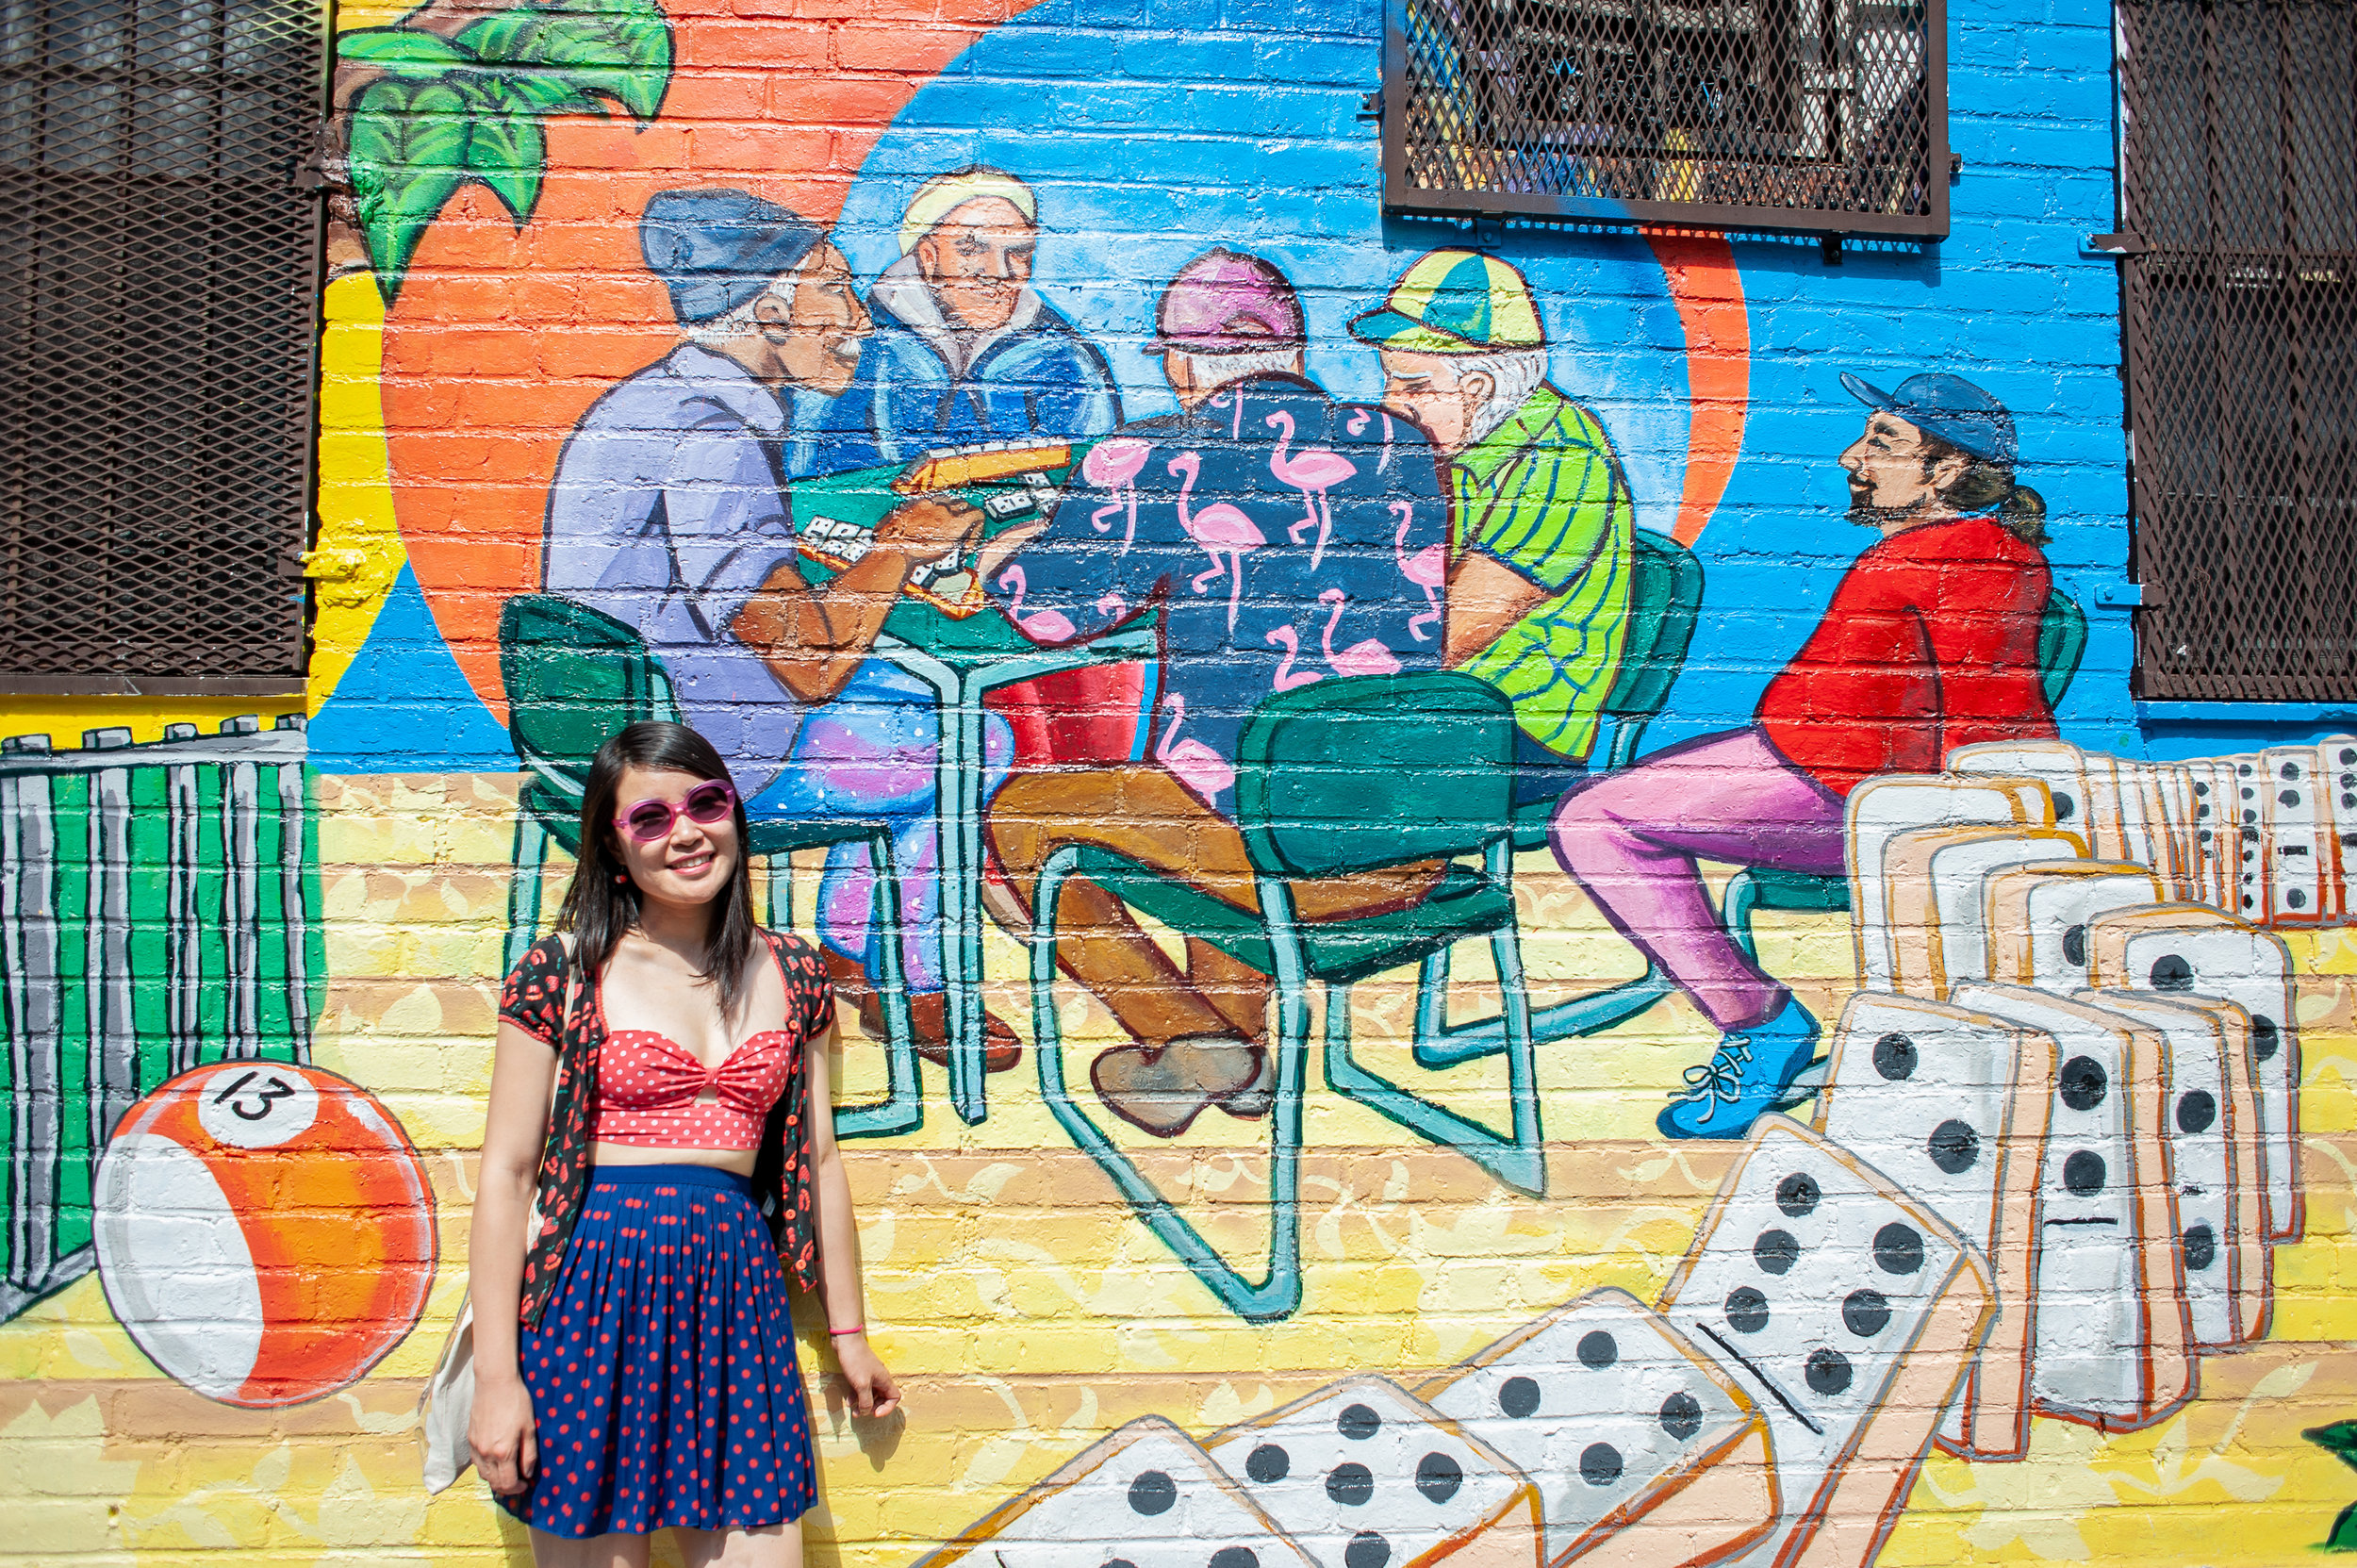 Peach next to a Thrive Collective mural she helped paint at Lillian Wald Senior Center in Alphabet City.